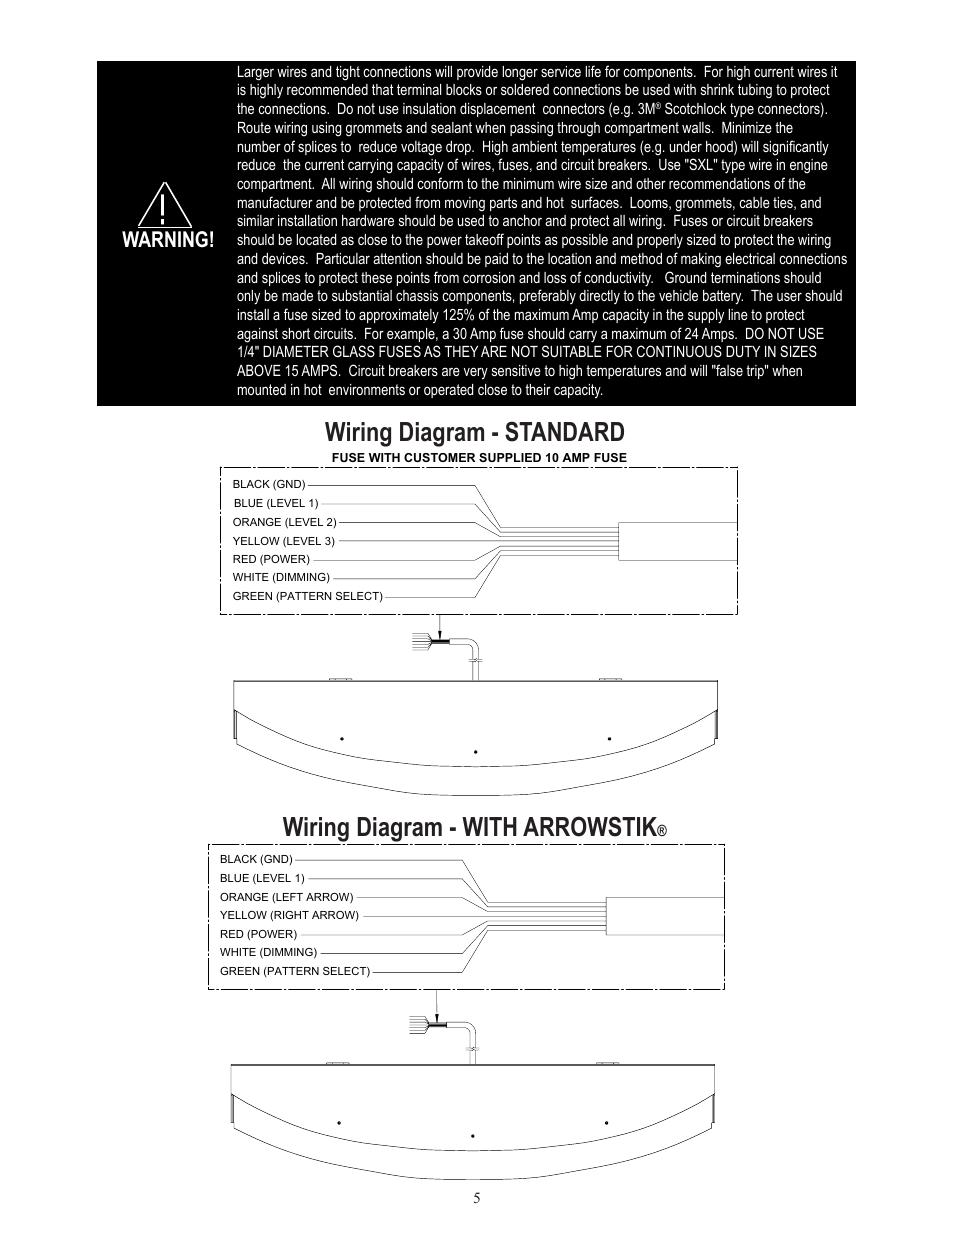 Code 3 Wingman Wiring Diagram Archive Of Automotive Tc Standard With Arrowstik Warning Rh Manualsdir Com